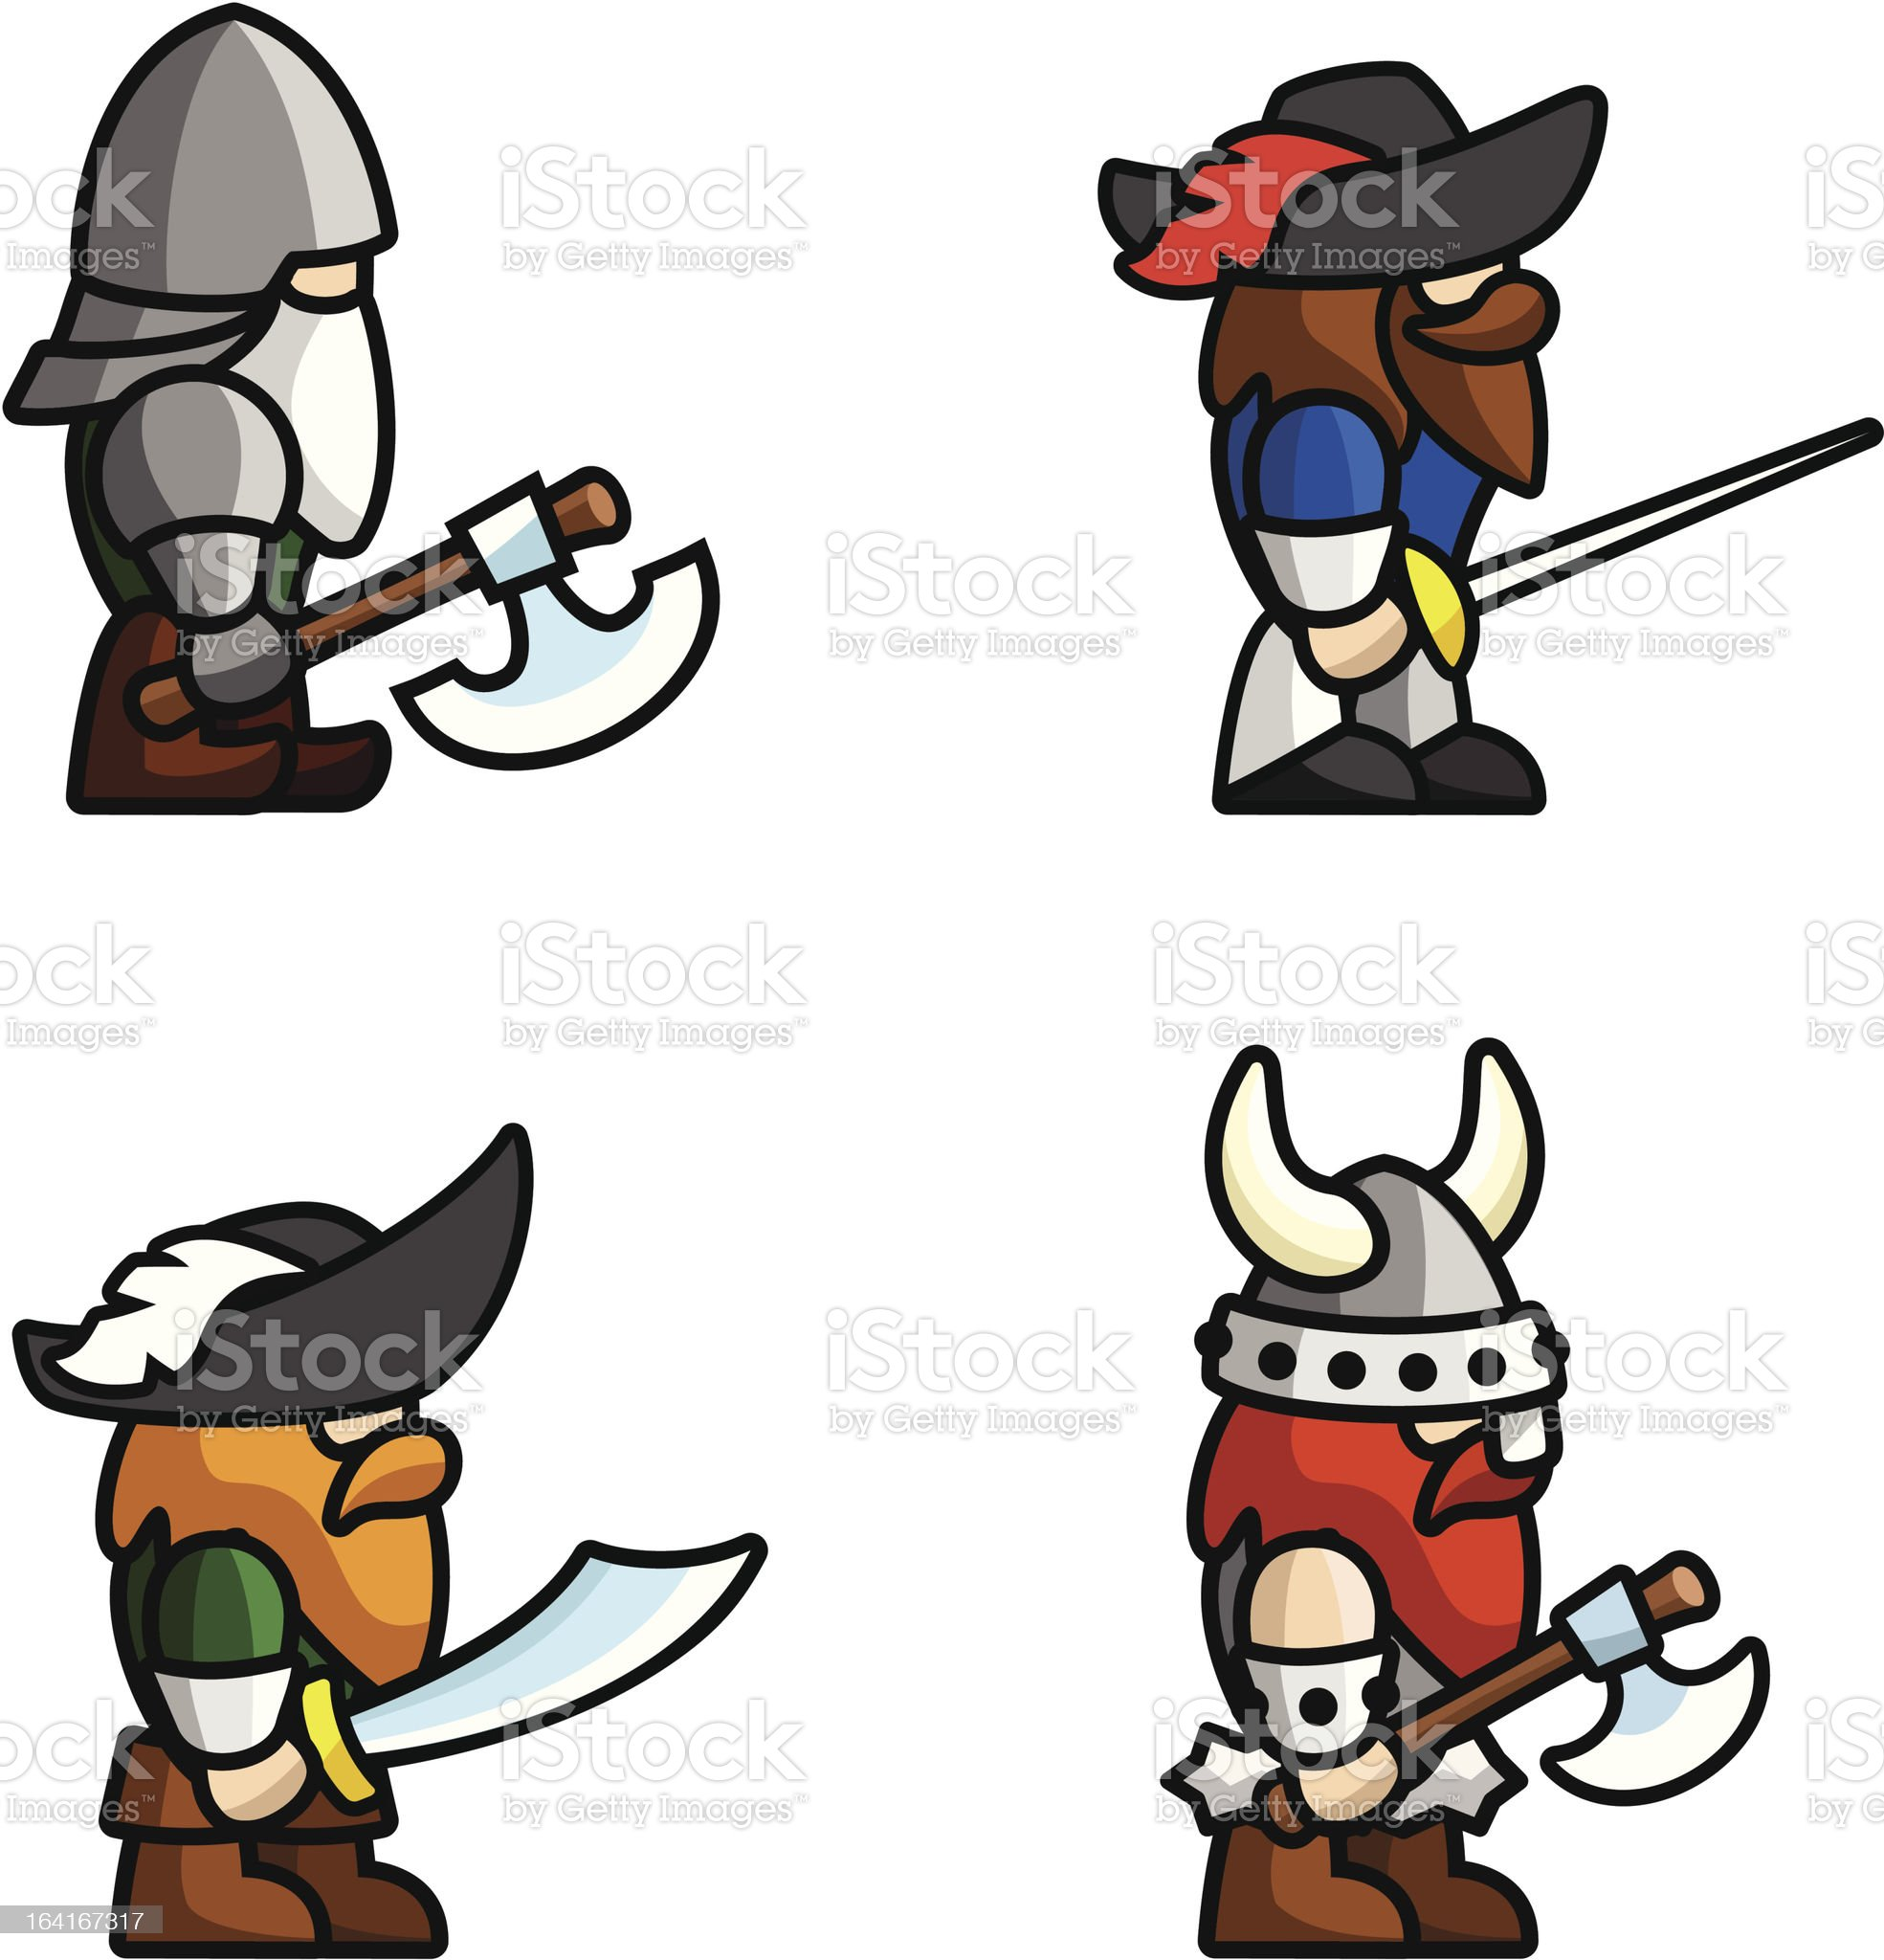 Historical battle characters royalty-free stock vector art